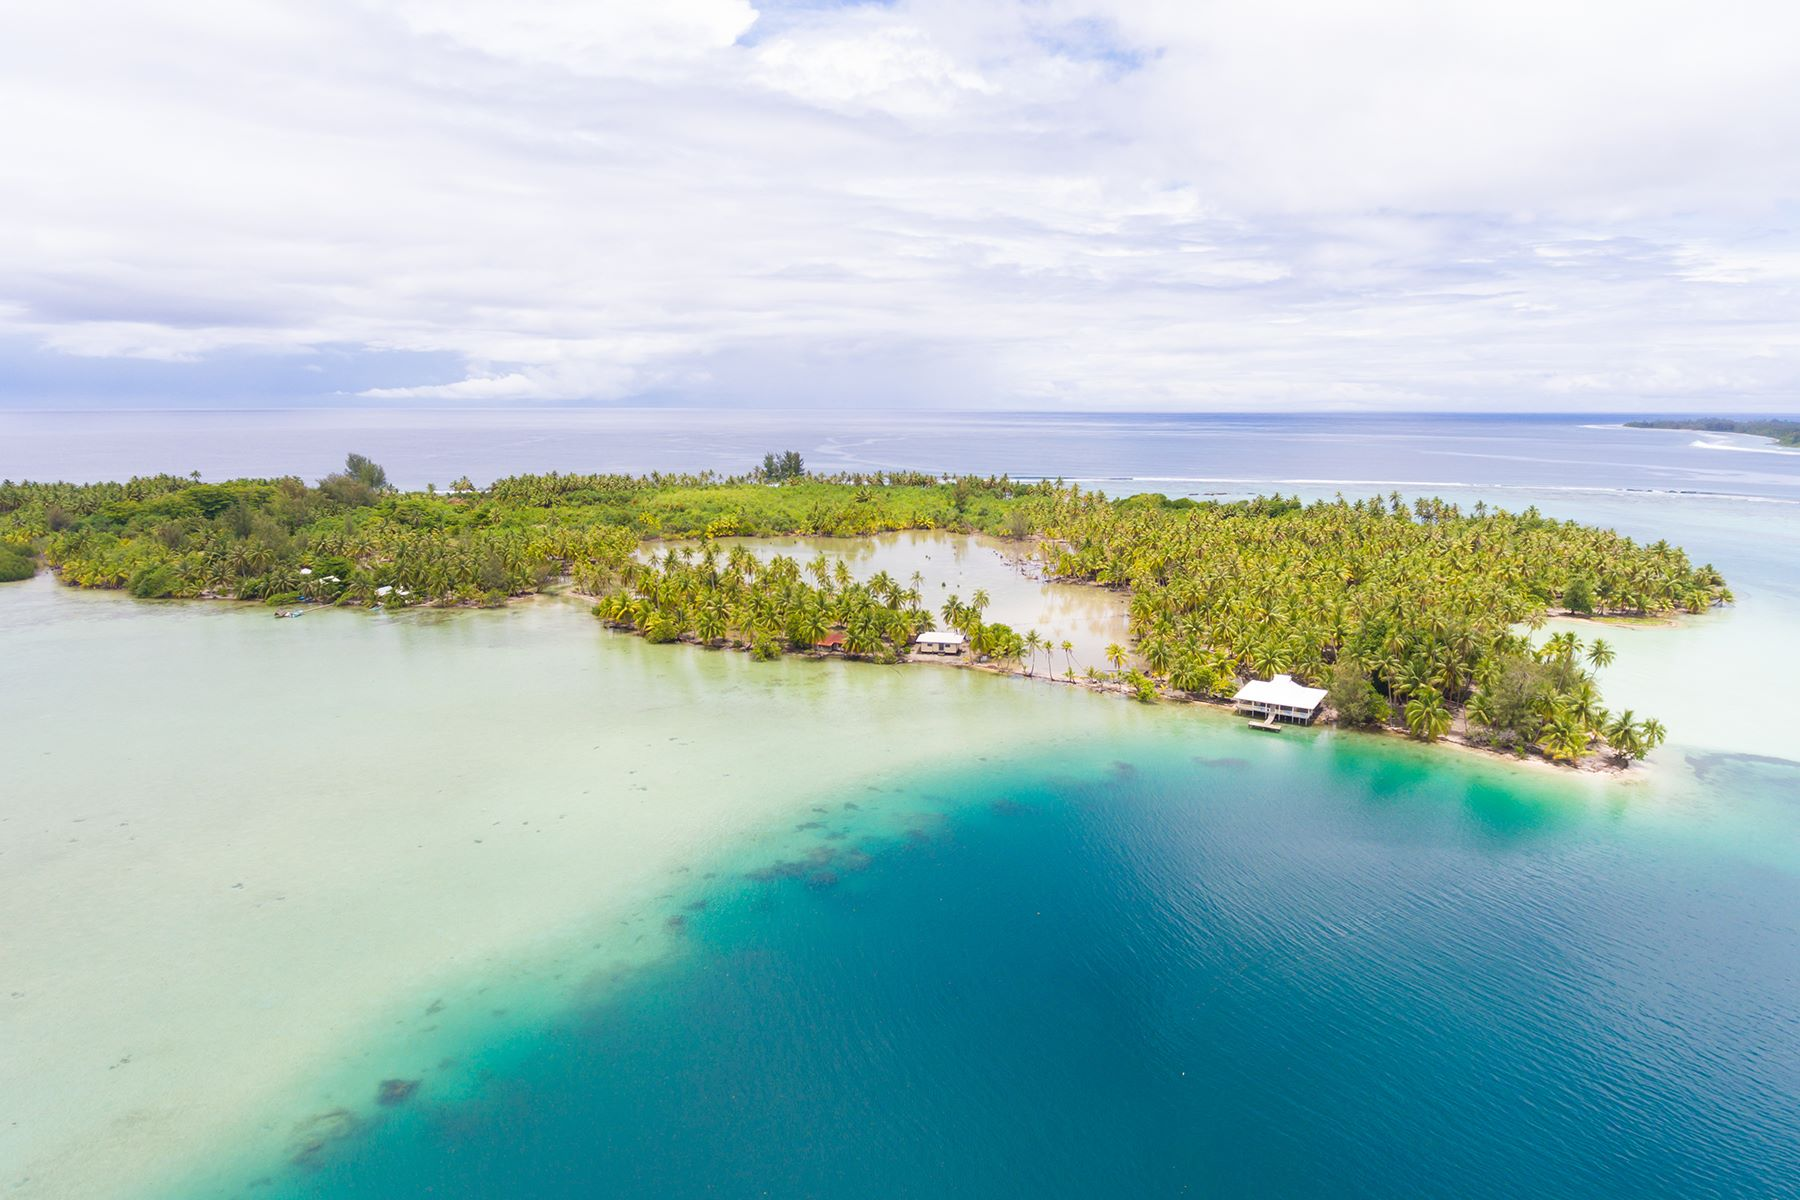 Land for Sale at Dreaming land in Huahine Huahine, French Polynesia